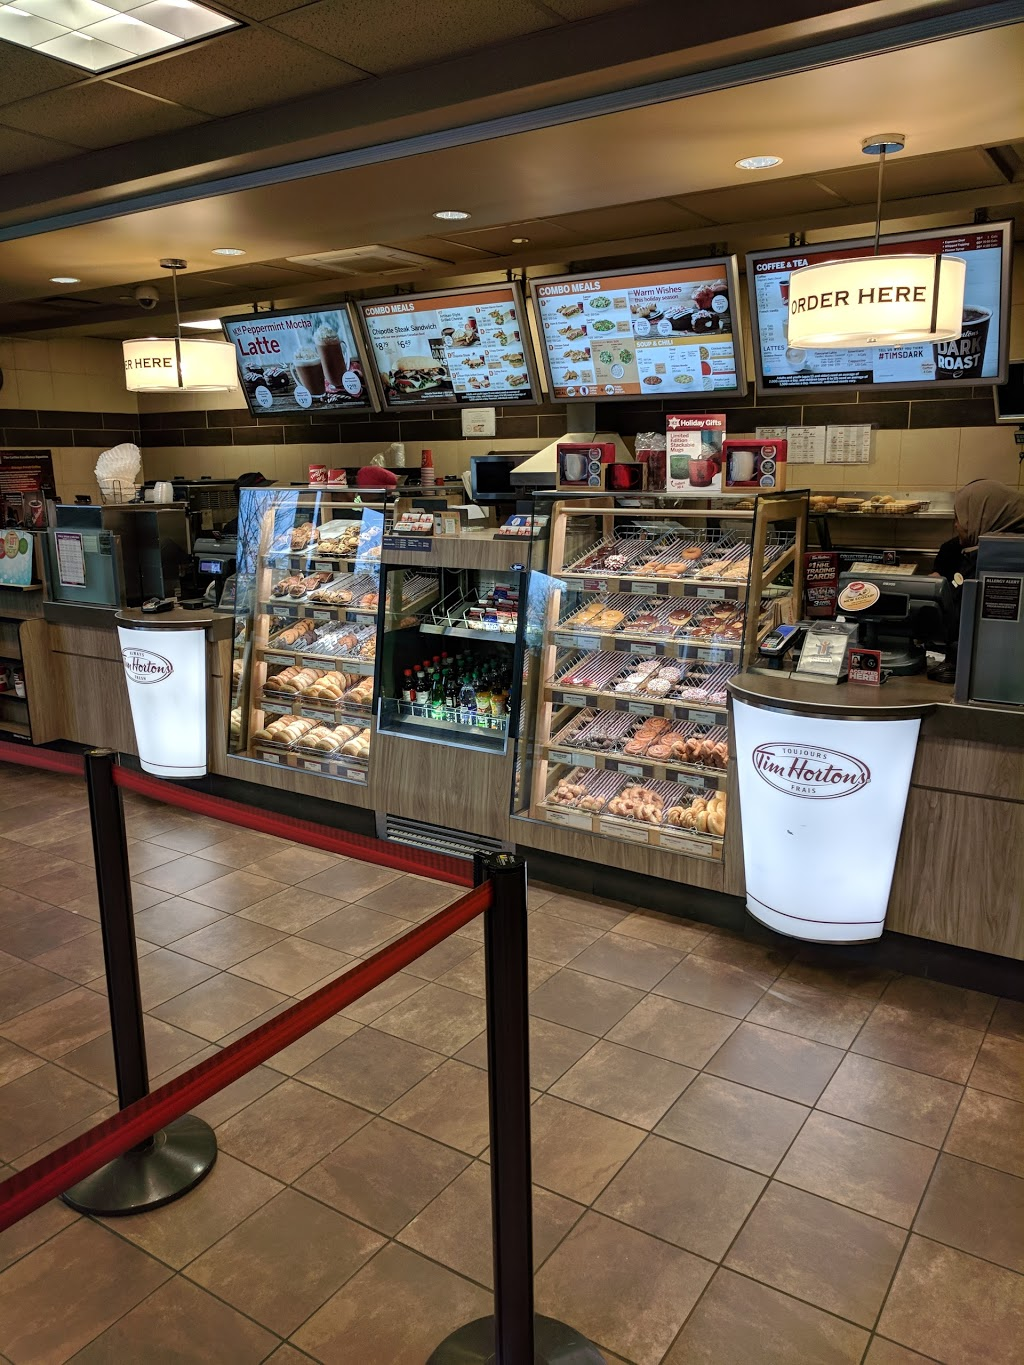 Tim Hortons | cafe | 1125 Colonel By Dr, Ottawa, ON K1S 5B6, Canada | 6135205635 OR +1 613-520-5635